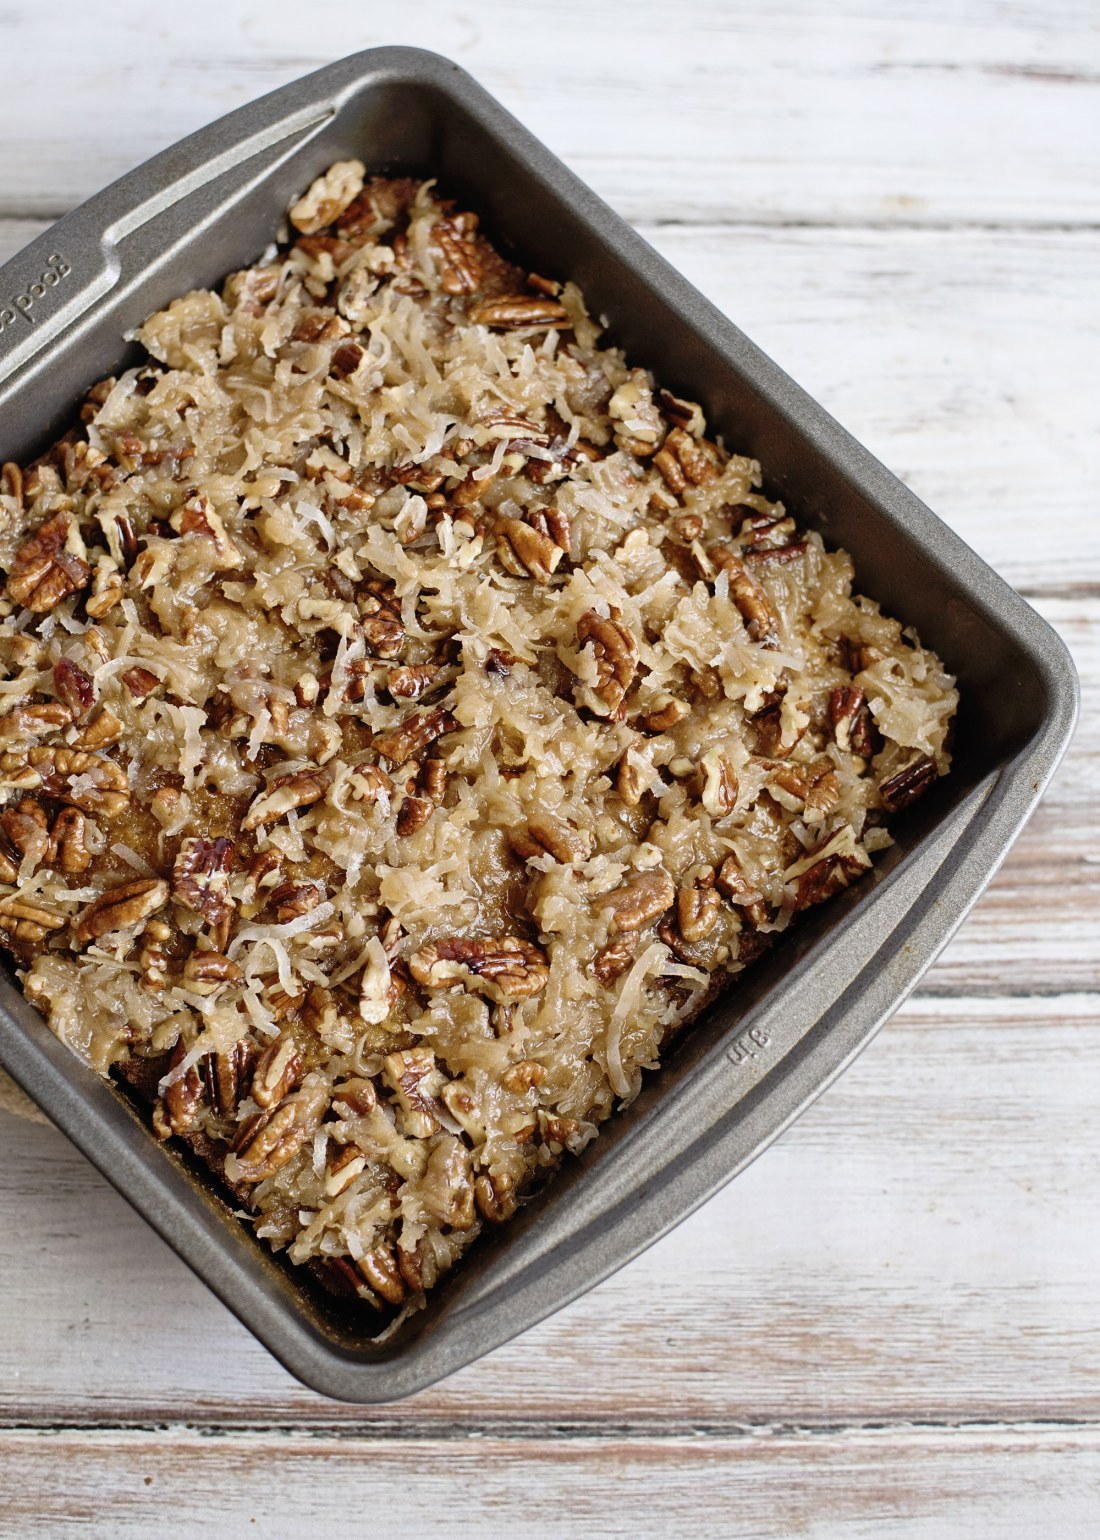 Straight out of the oven you can find this delicious Oatmeal Cake with Coconut Pecan Frosting. Easy to make and perfect for the whole family, serve right from the pan to your plate.